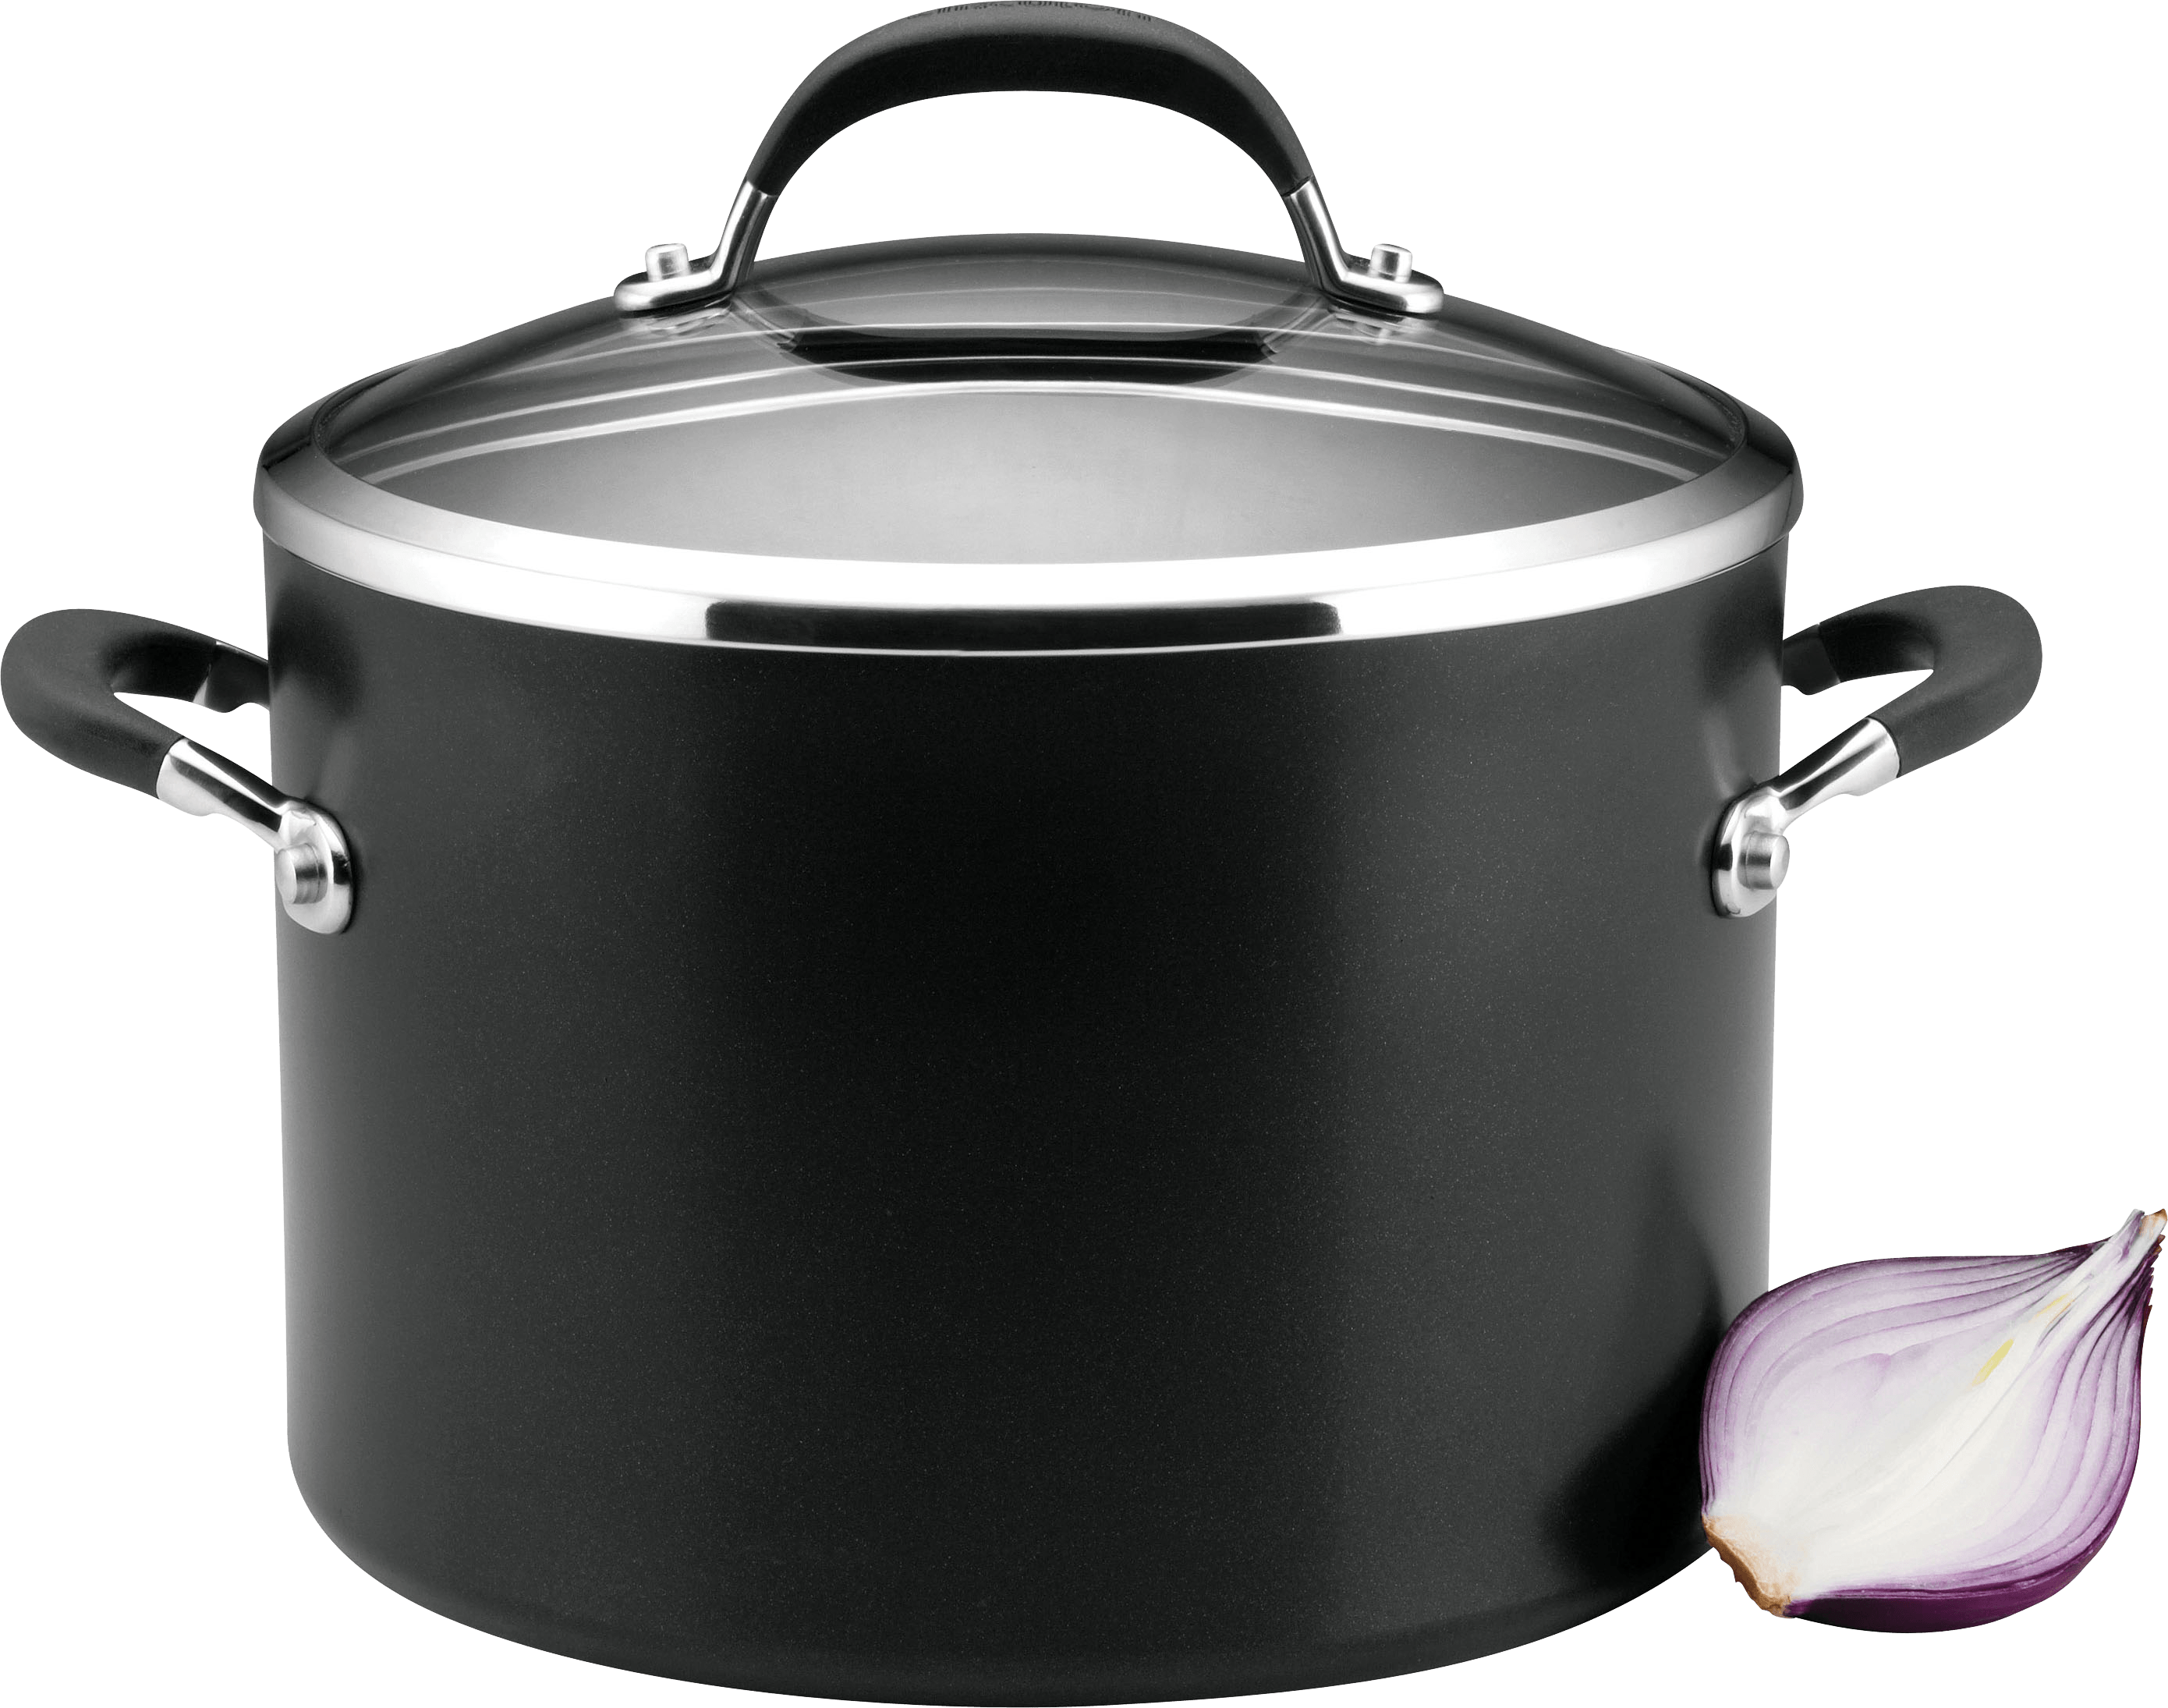 Cooking pot png. Image web icons icon